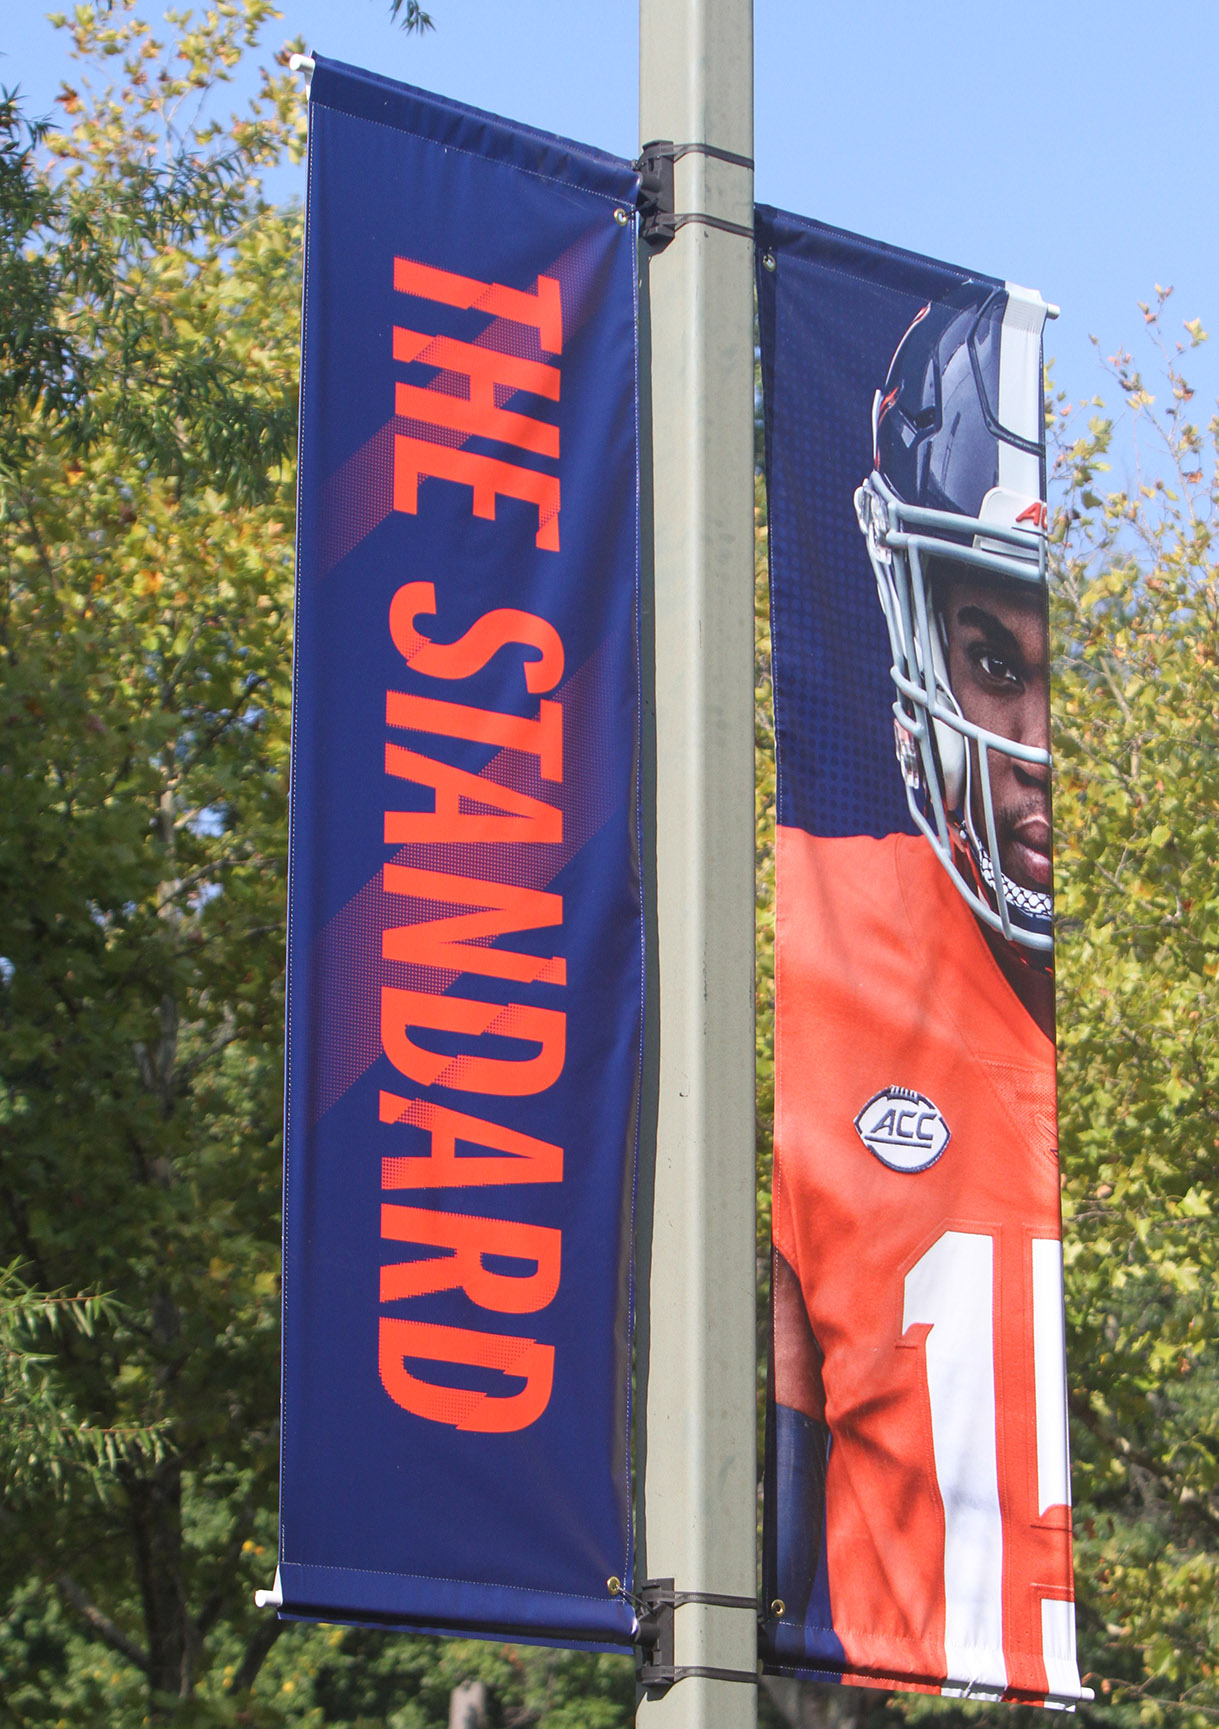 Scott Stadium Light Pole Banners